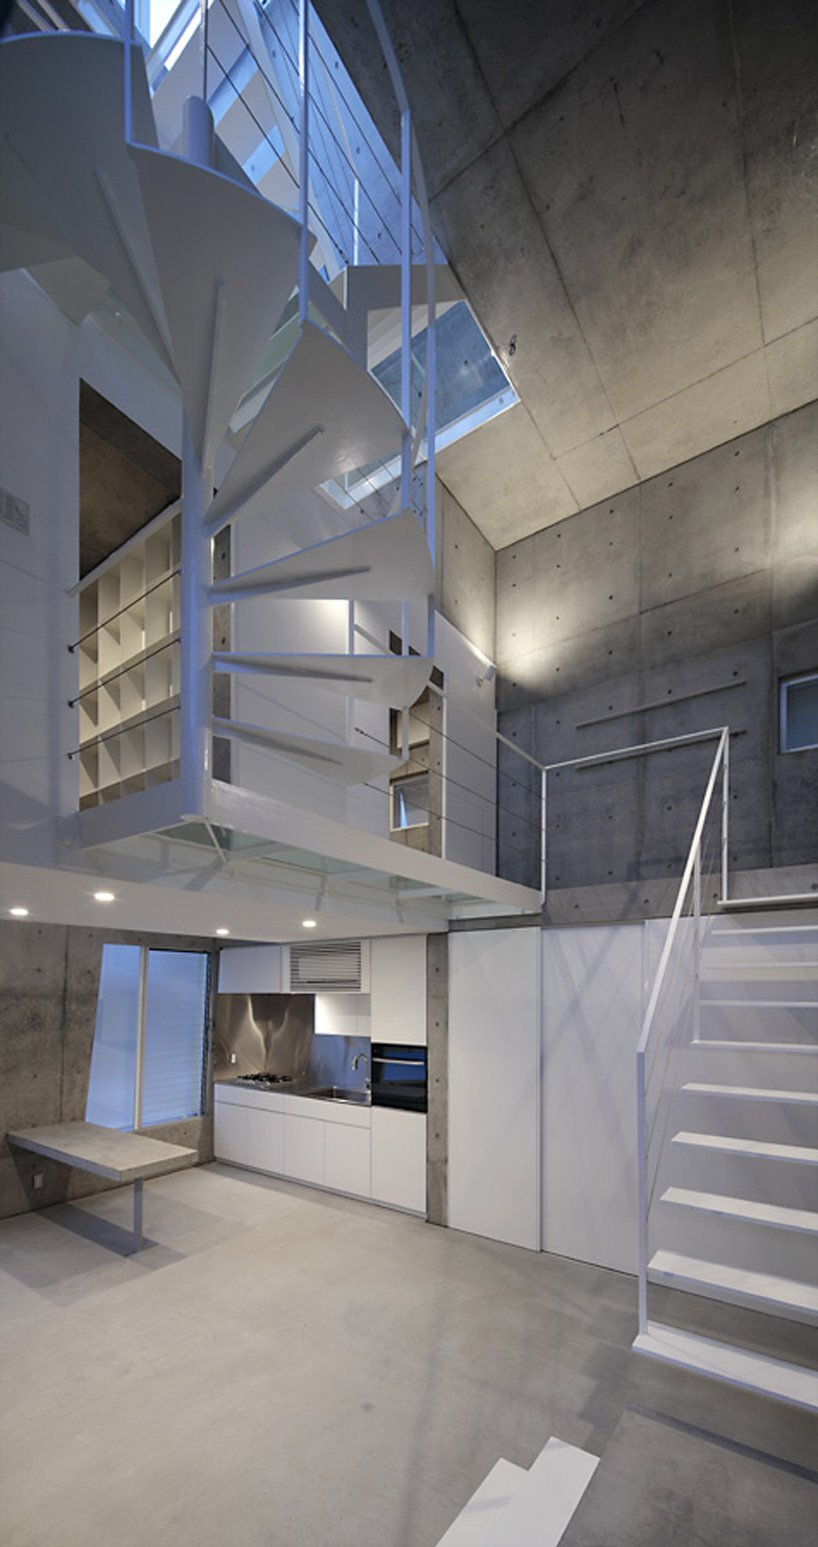 Small Corner House - A.L.X. Junichi SampeI - Japan - Kitchen and Staircase - Humble Homes